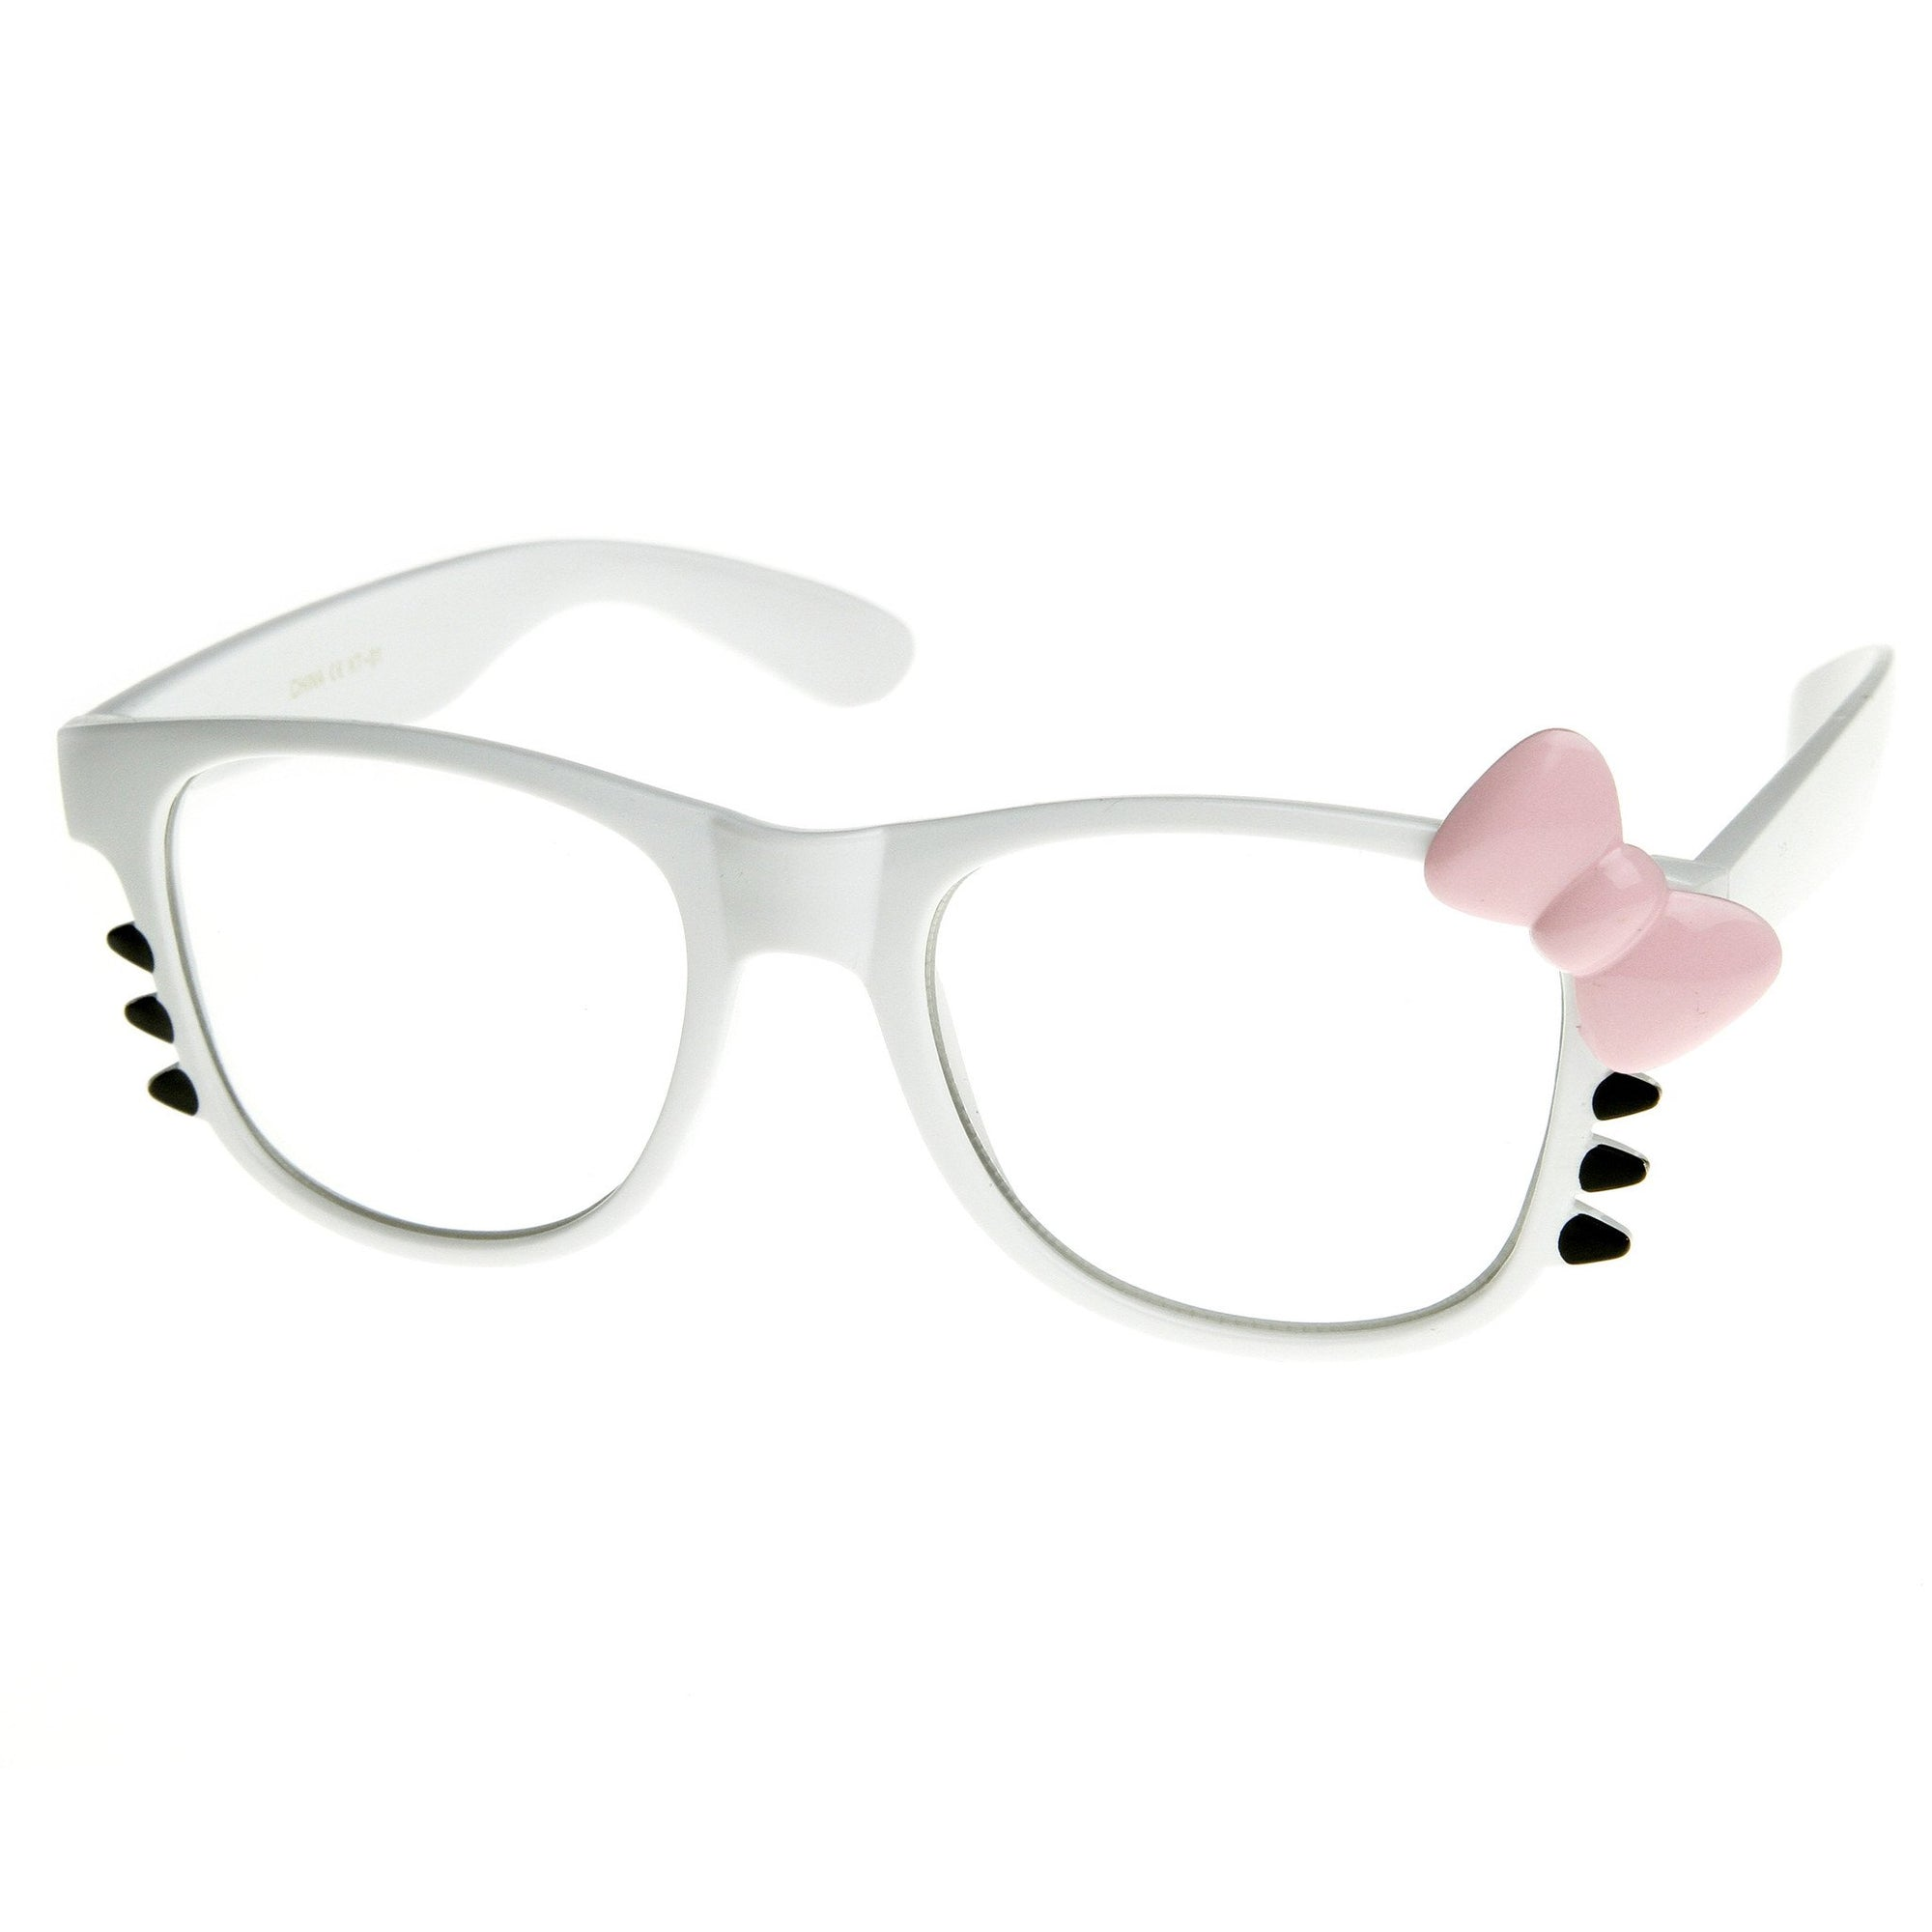 ad358ec4c Cute Womens Hello Kitty Bow Clear Lens Glasses With Whiskers 8499 · Black  Red Bow · Black Pink Bow · White Pink Bow